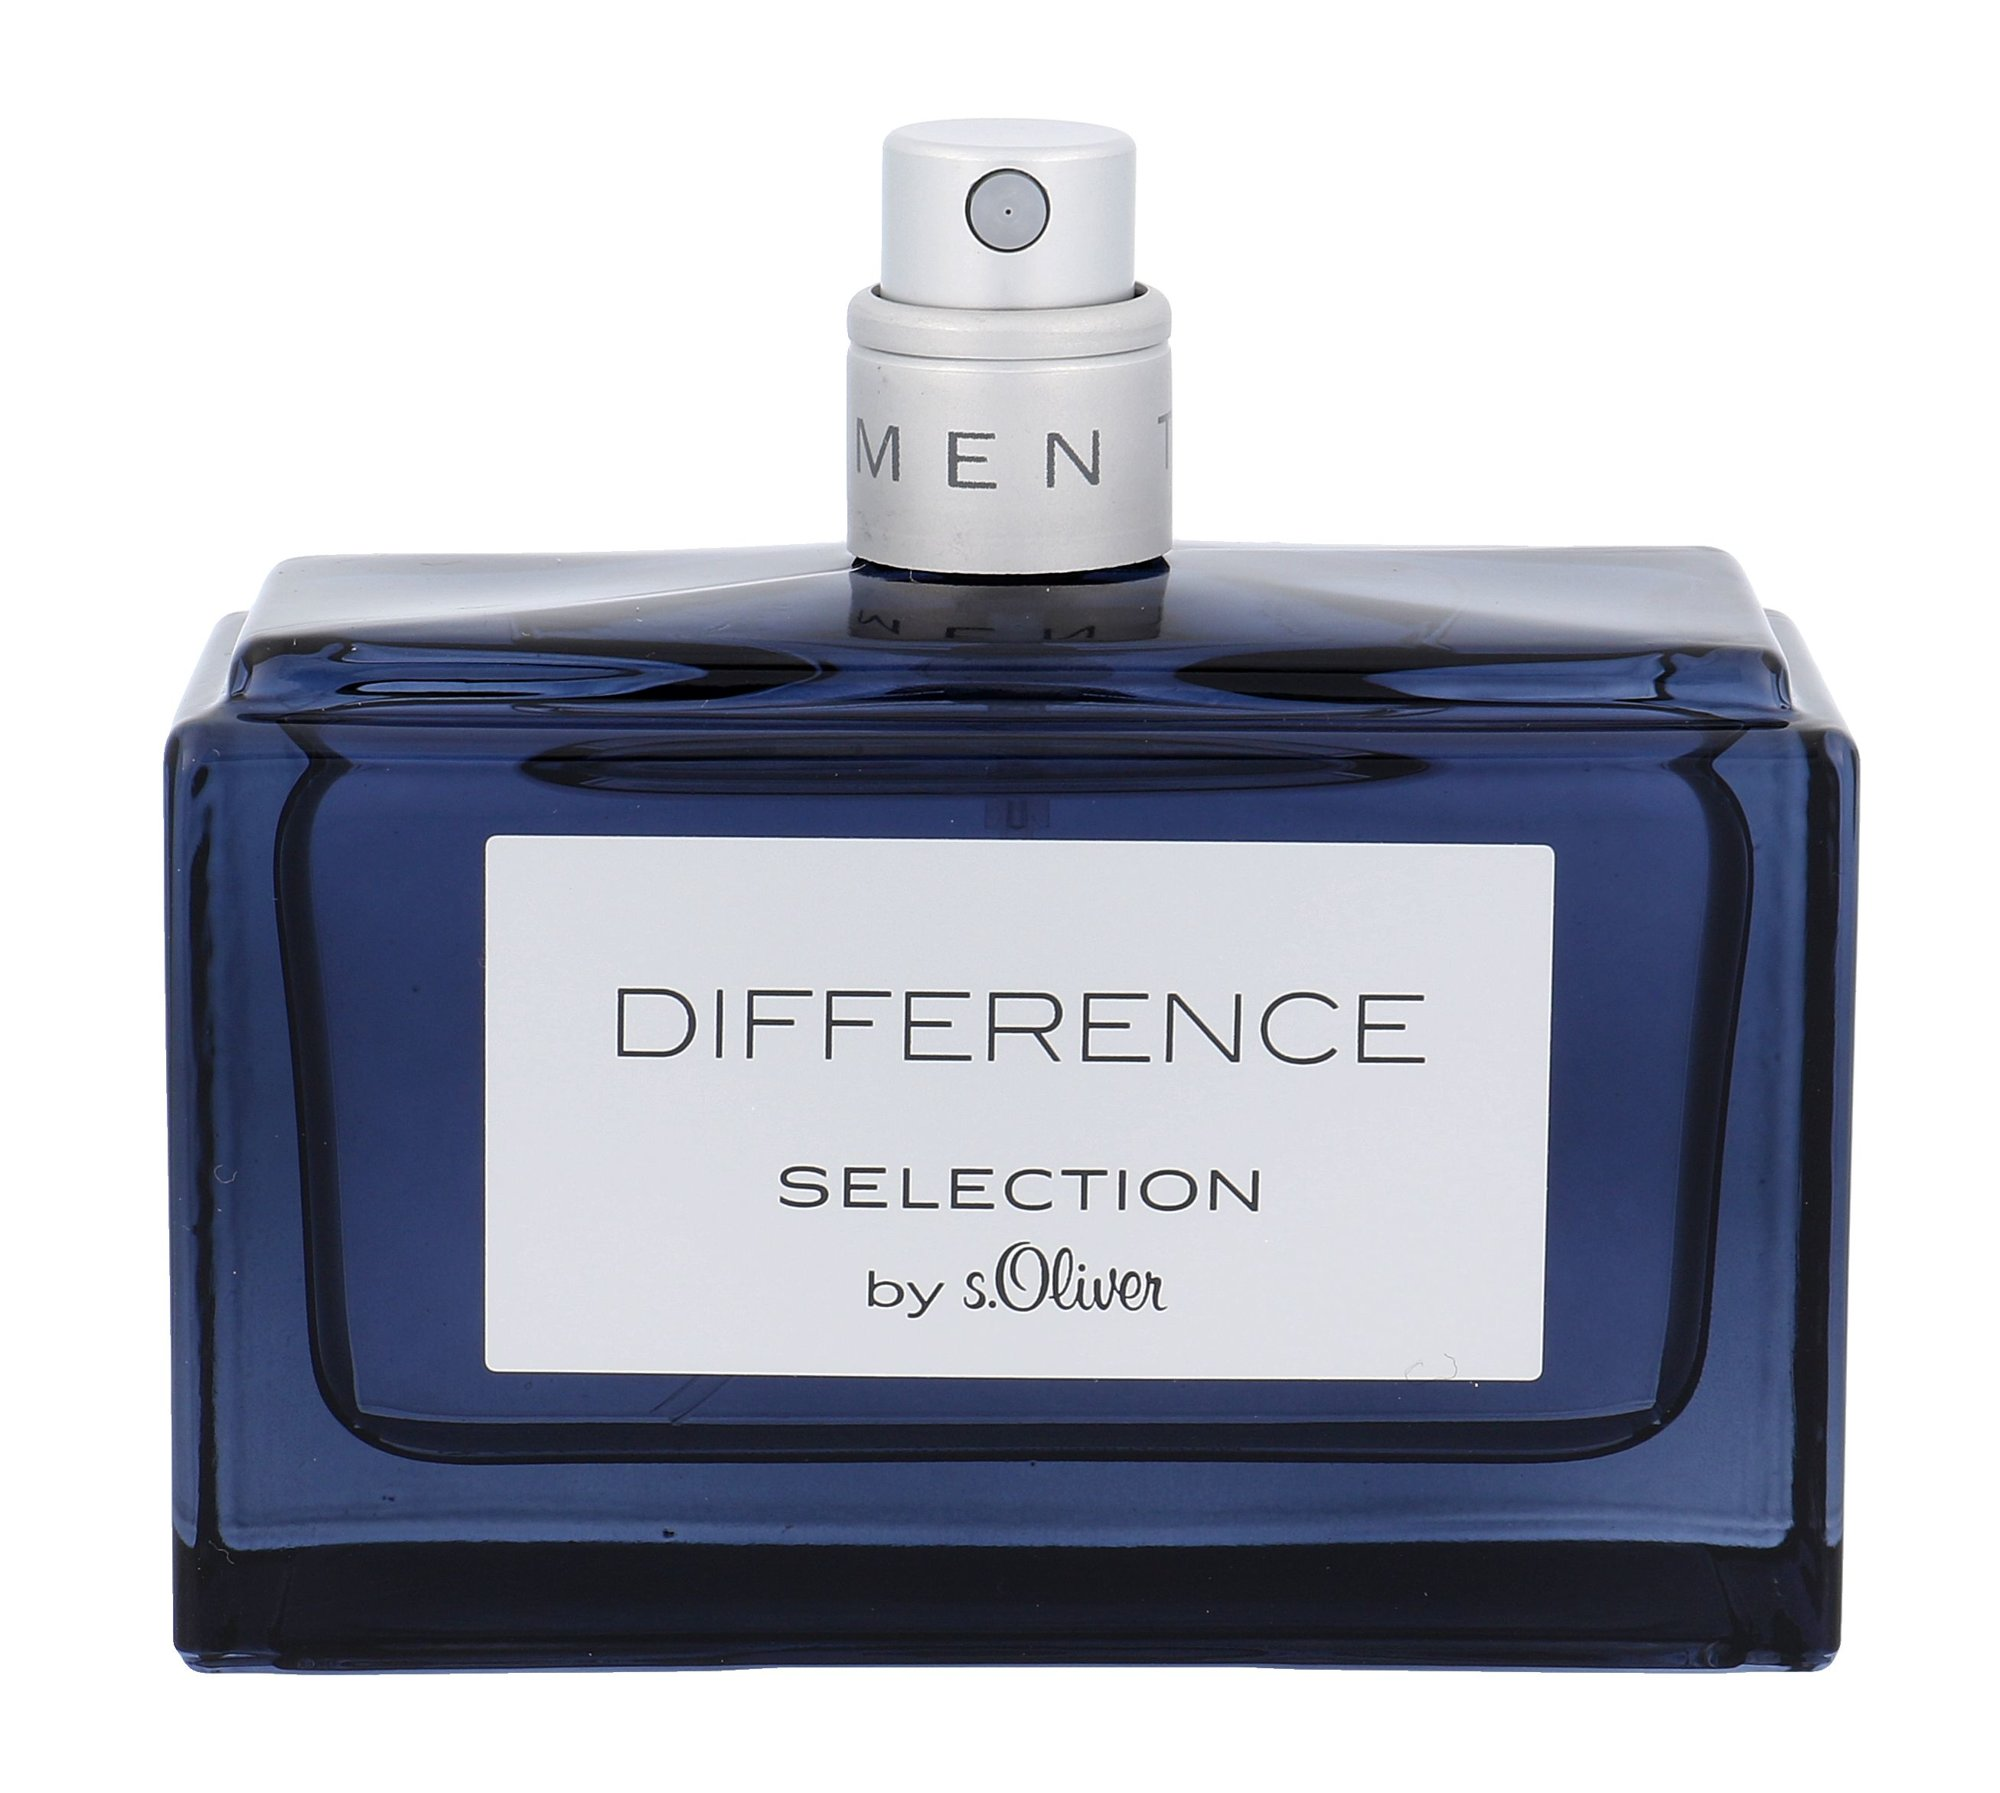 s.Oliver Selection Difference EDT 50ml